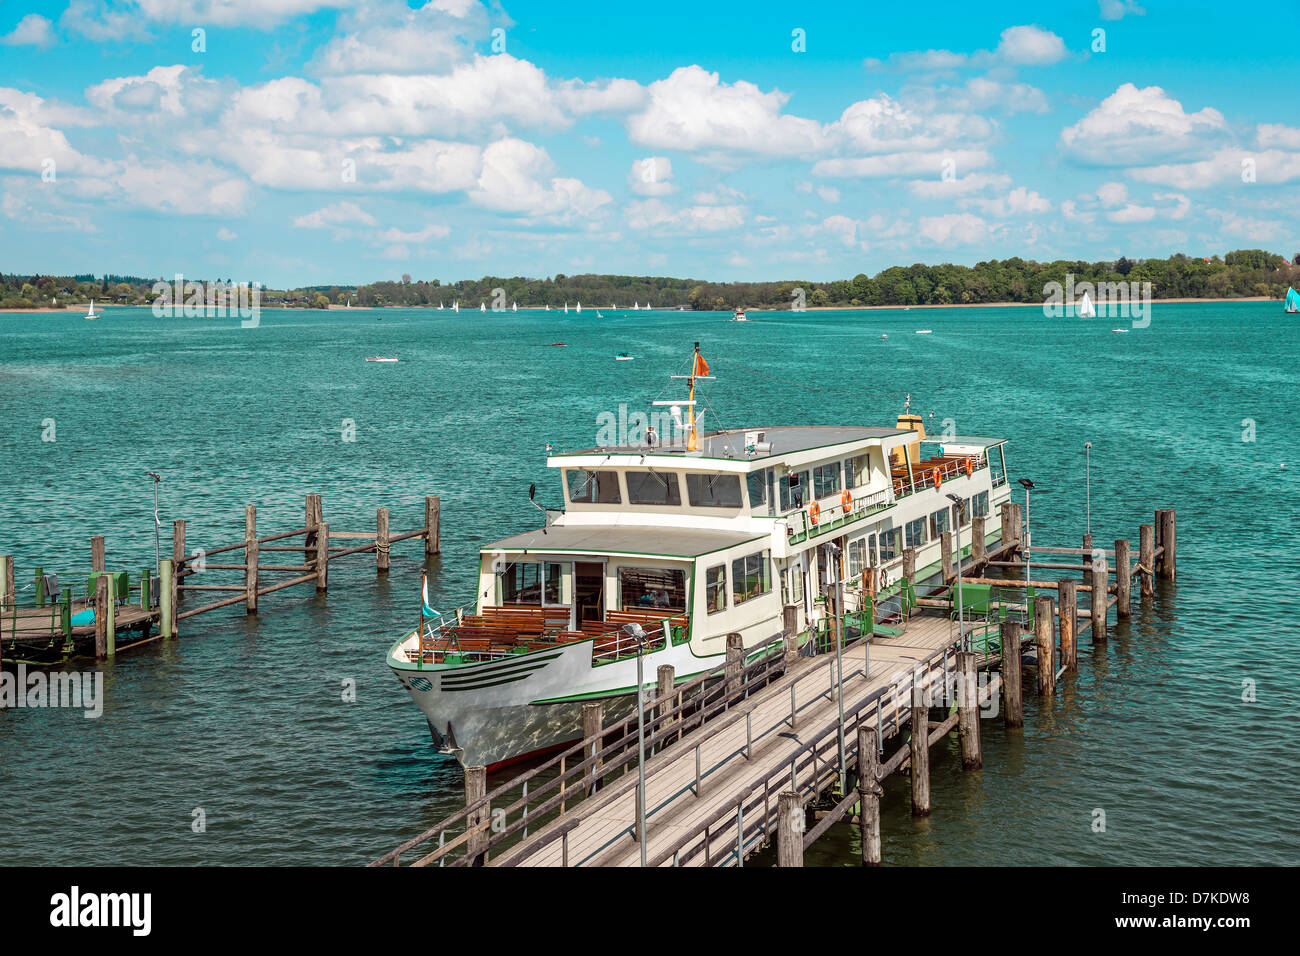 Passenger ship on lake Chiemsee in Germany with sailboat and bright sun. - Stock Image